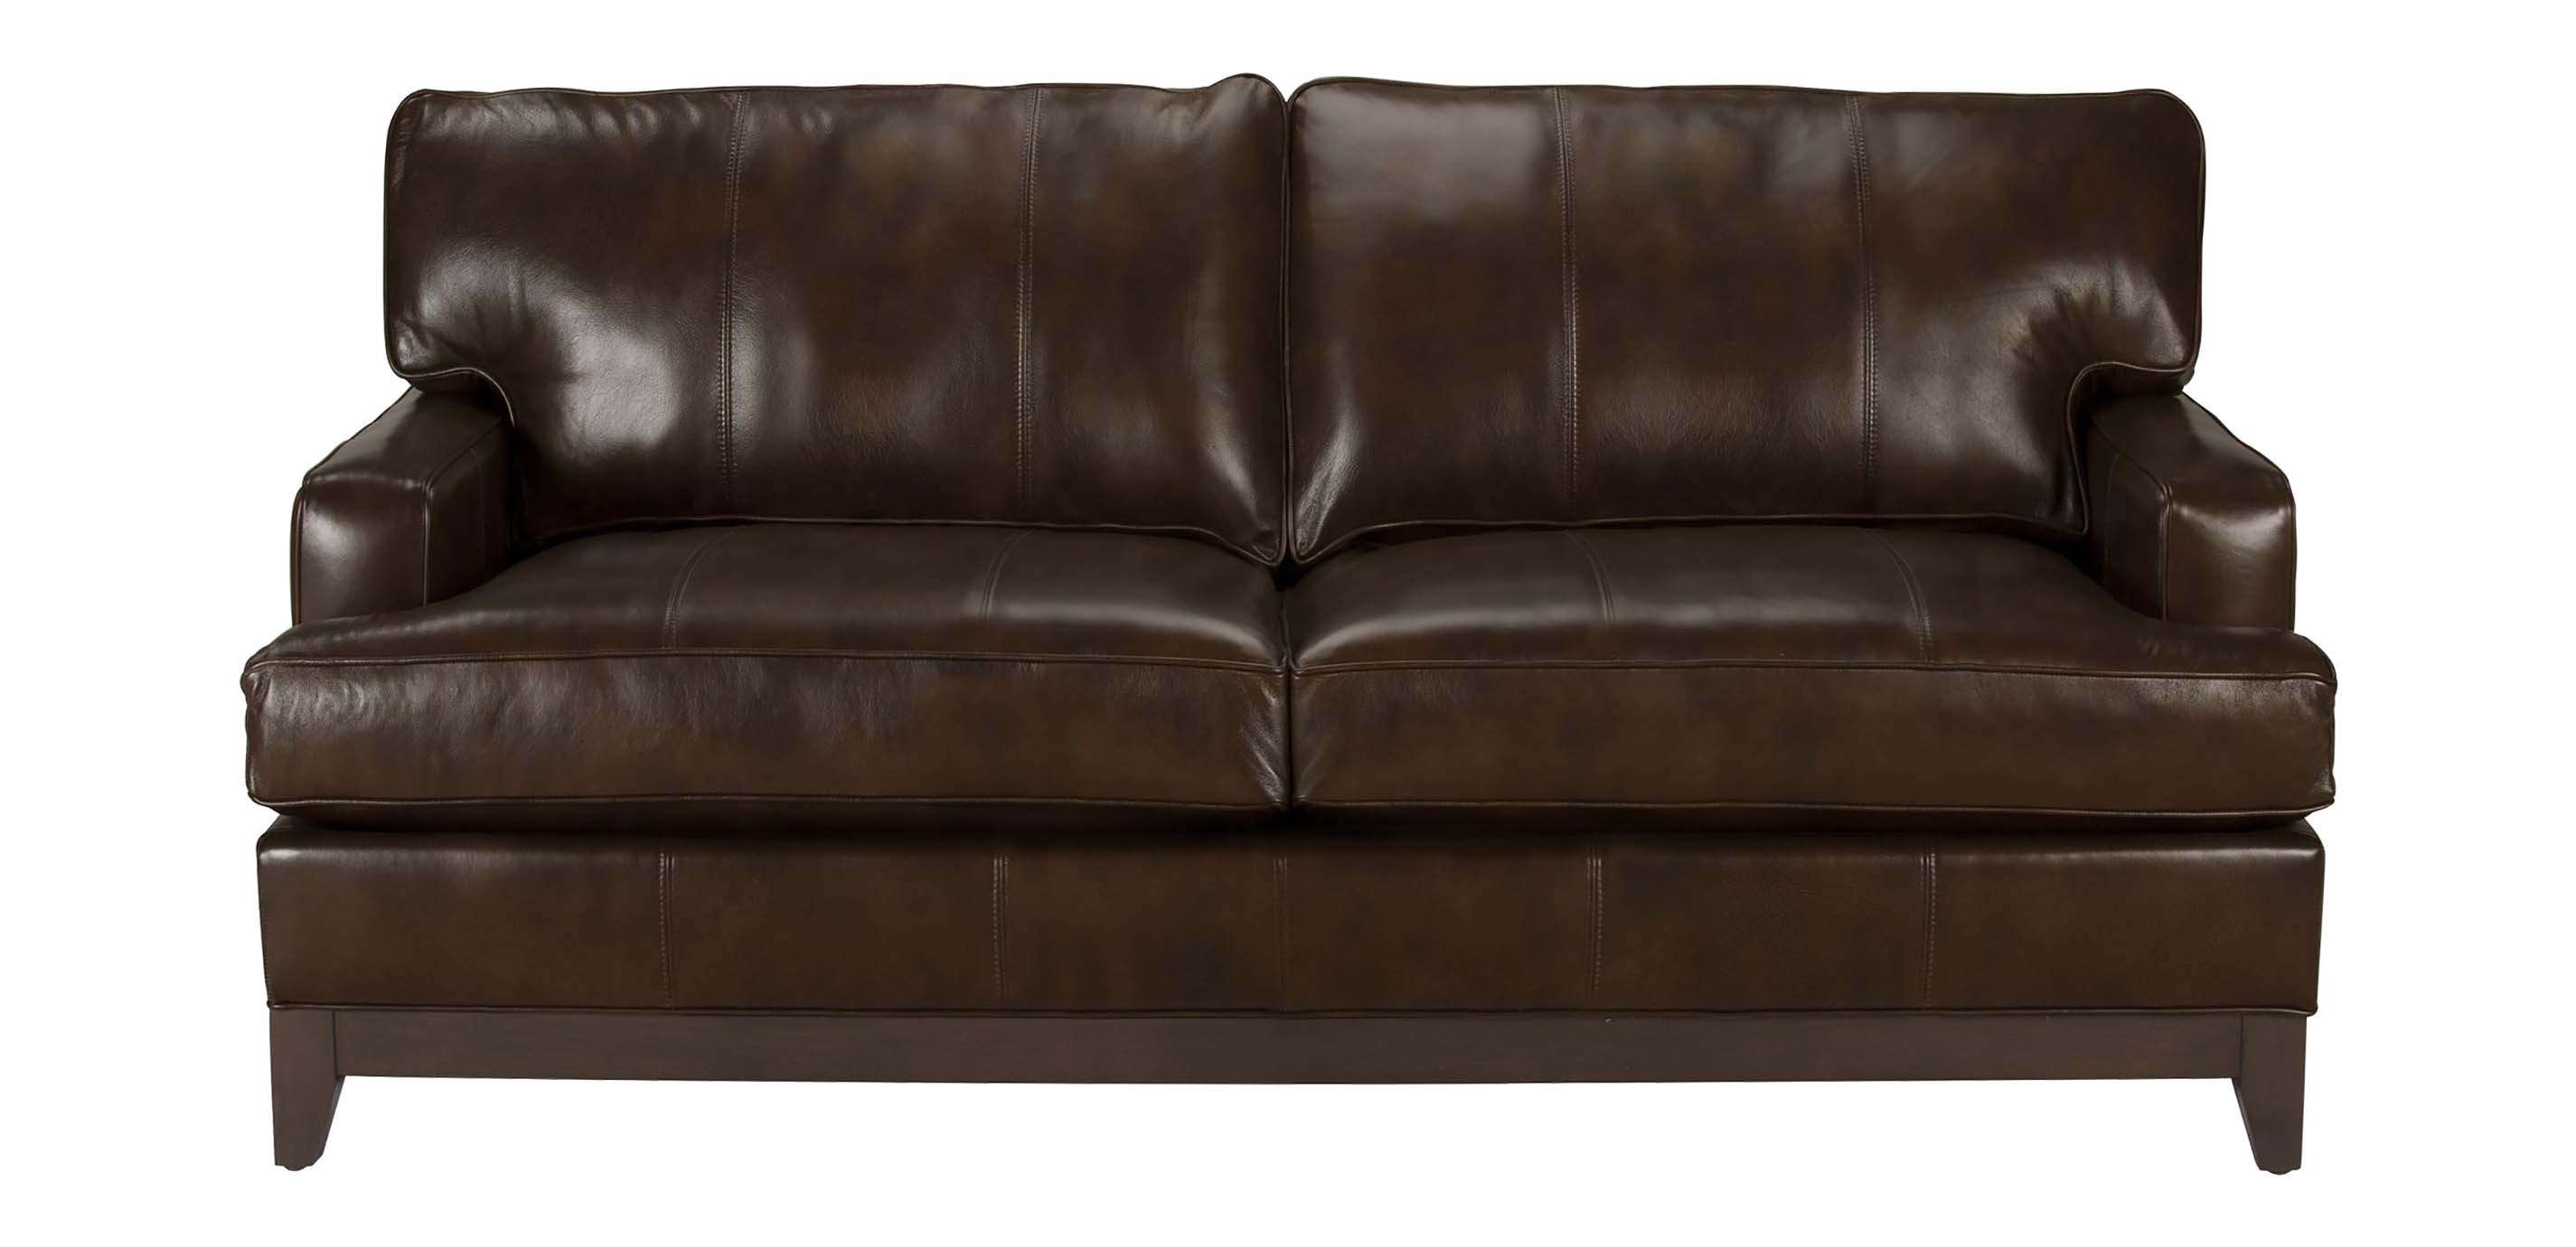 Arcata Leather Sofa Quick Ship Sofas amp Loveseats : 67 21141077DI from www.ethanallen.ca size 2430 x 1740 jpeg 148kB